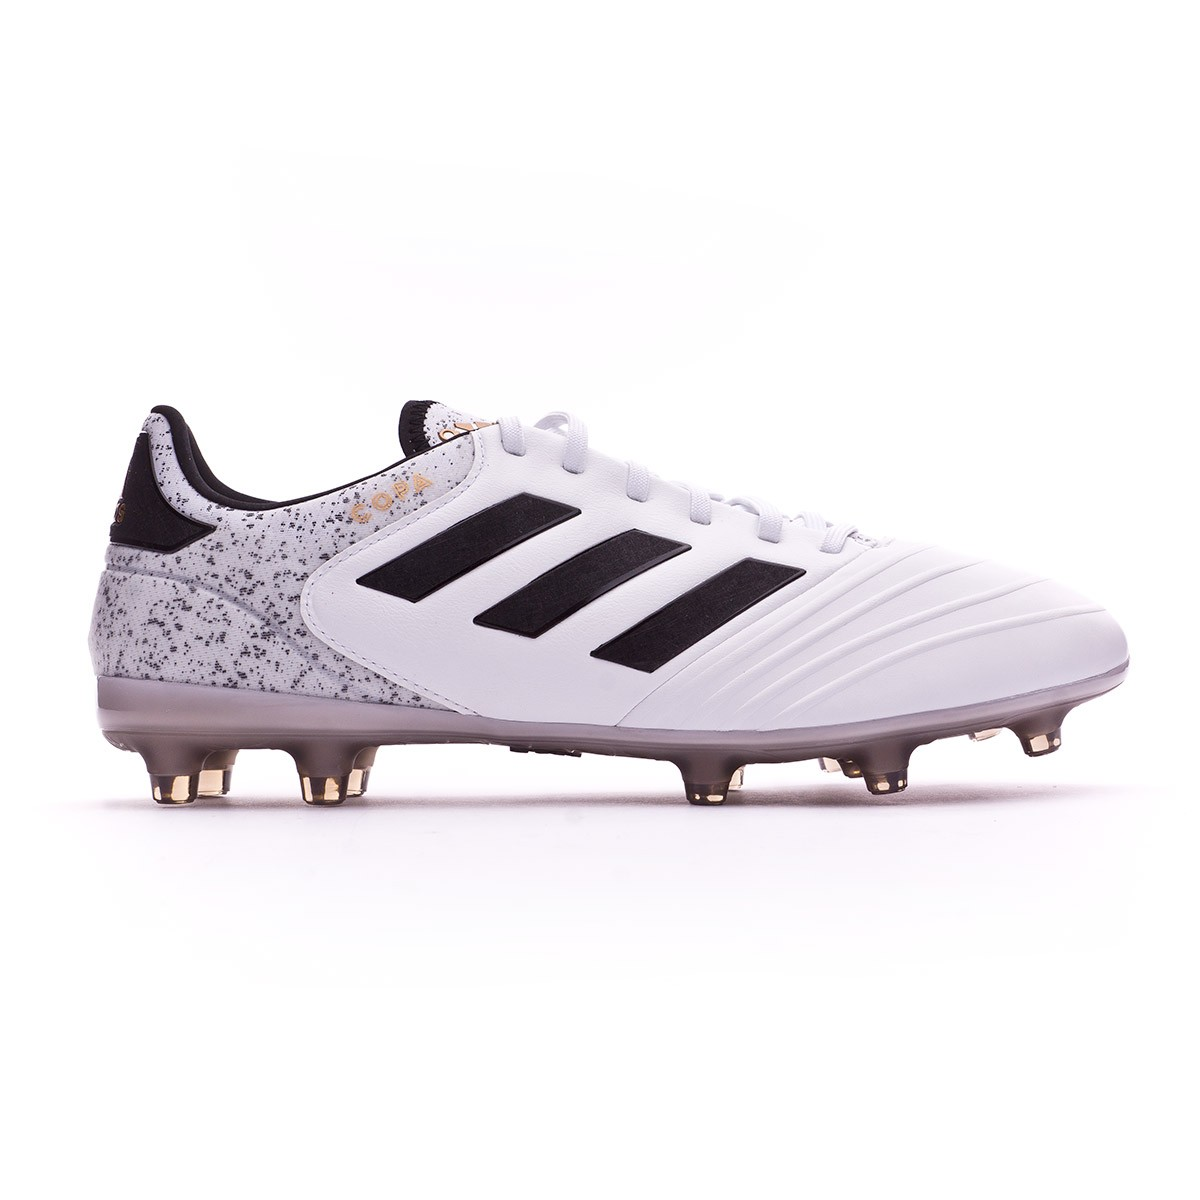 8e942e1cd8d0 Football Boots adidas Copa 18.2 FG White-Core black-Tactile gold metallic -  Football store Fútbol Emotion